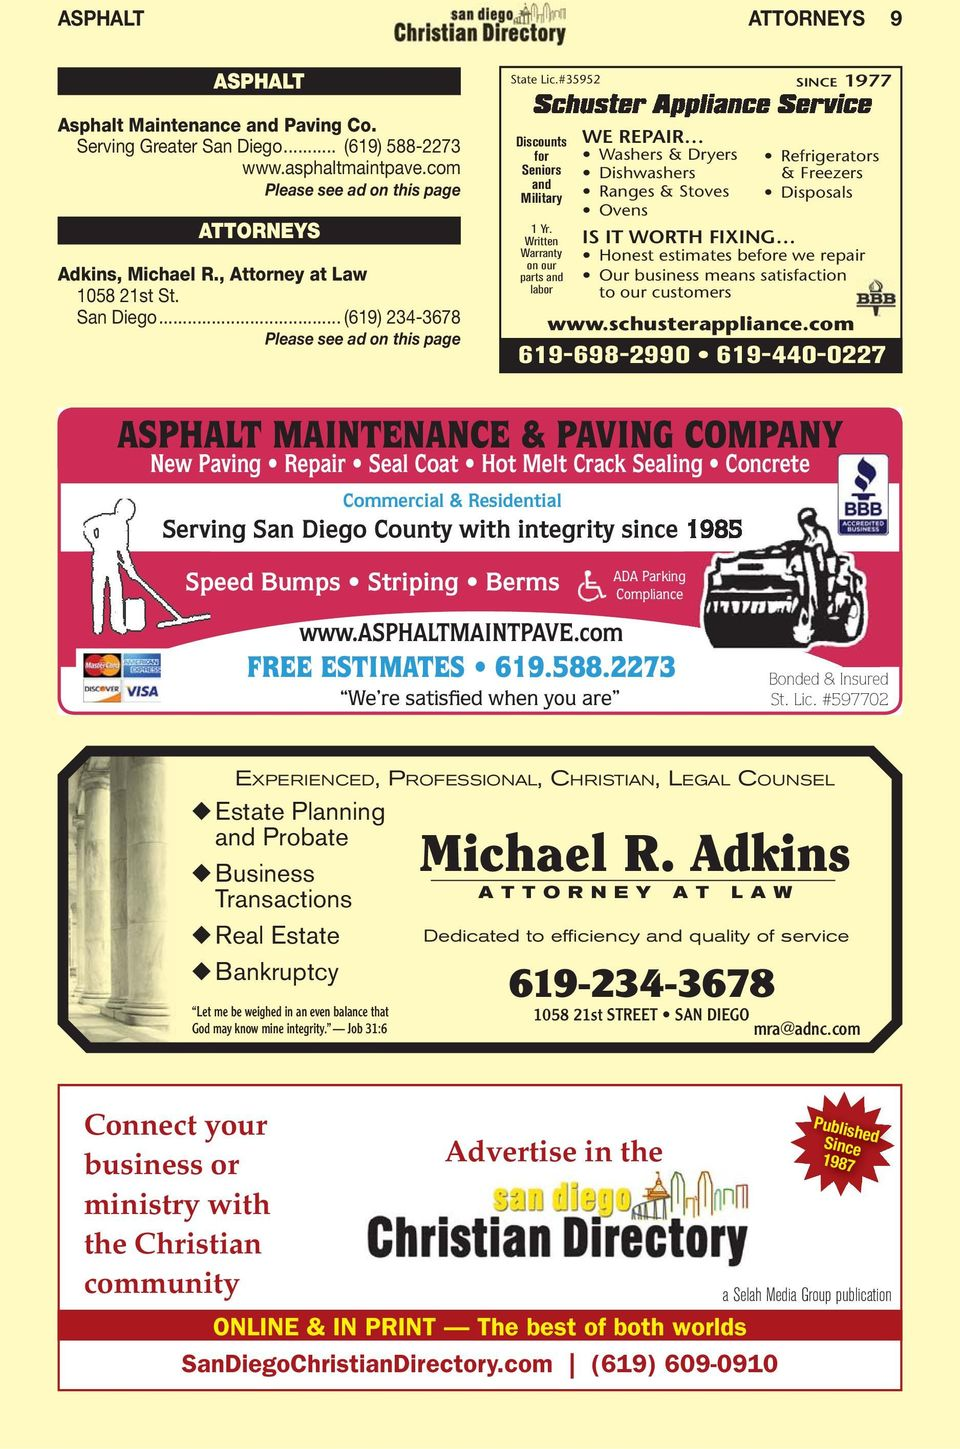 com ASPHALT MAINTENANCE & PAVING COMPANY Commercial & Residential Serving San Diego County with integrity since 1985 ADA Parking Compliance www.asphaltmaintpave.